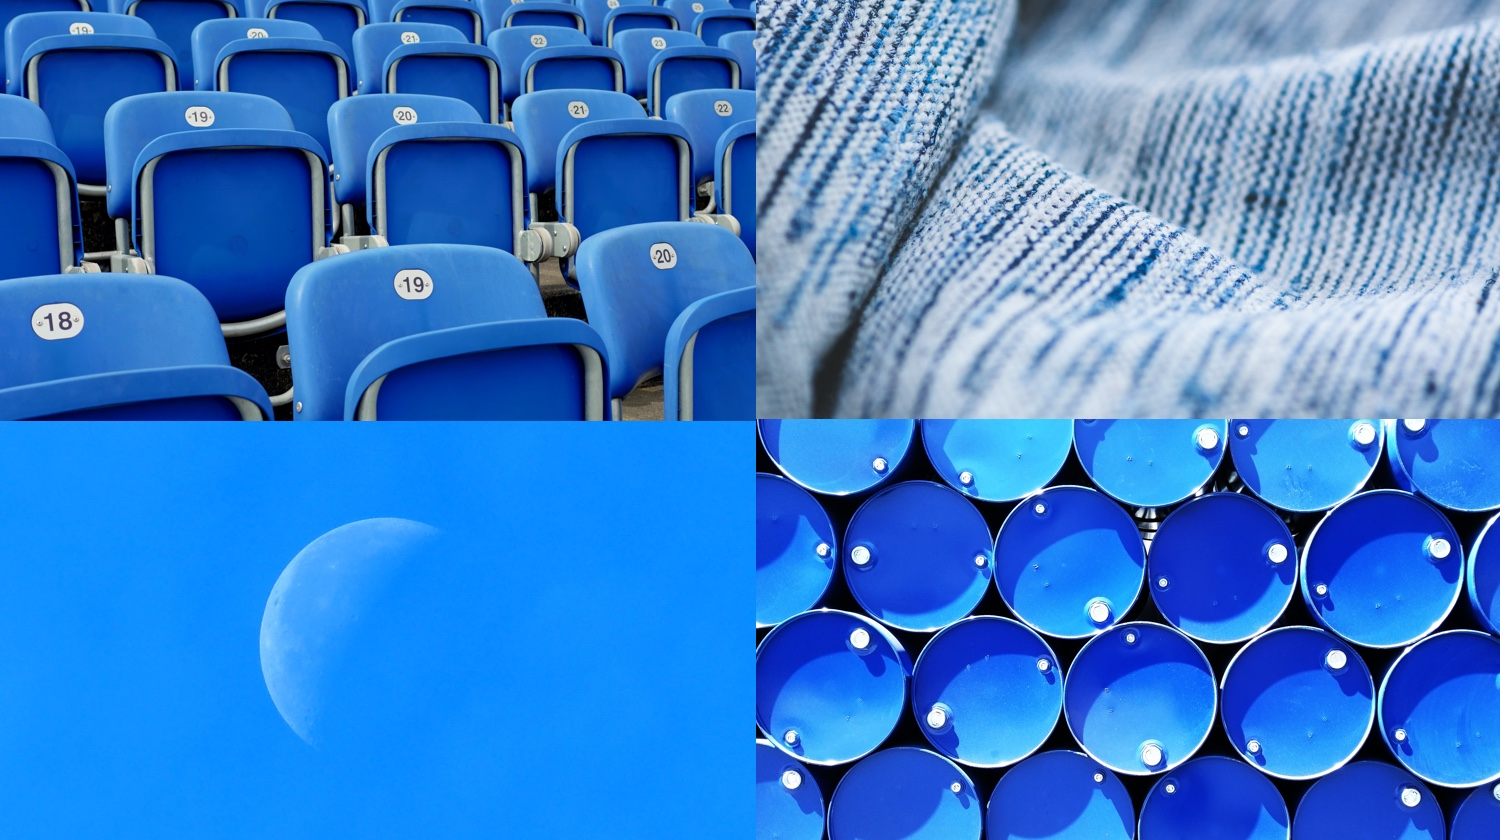 blue stock images of stadium seats, fabric, the moon, liquid drums